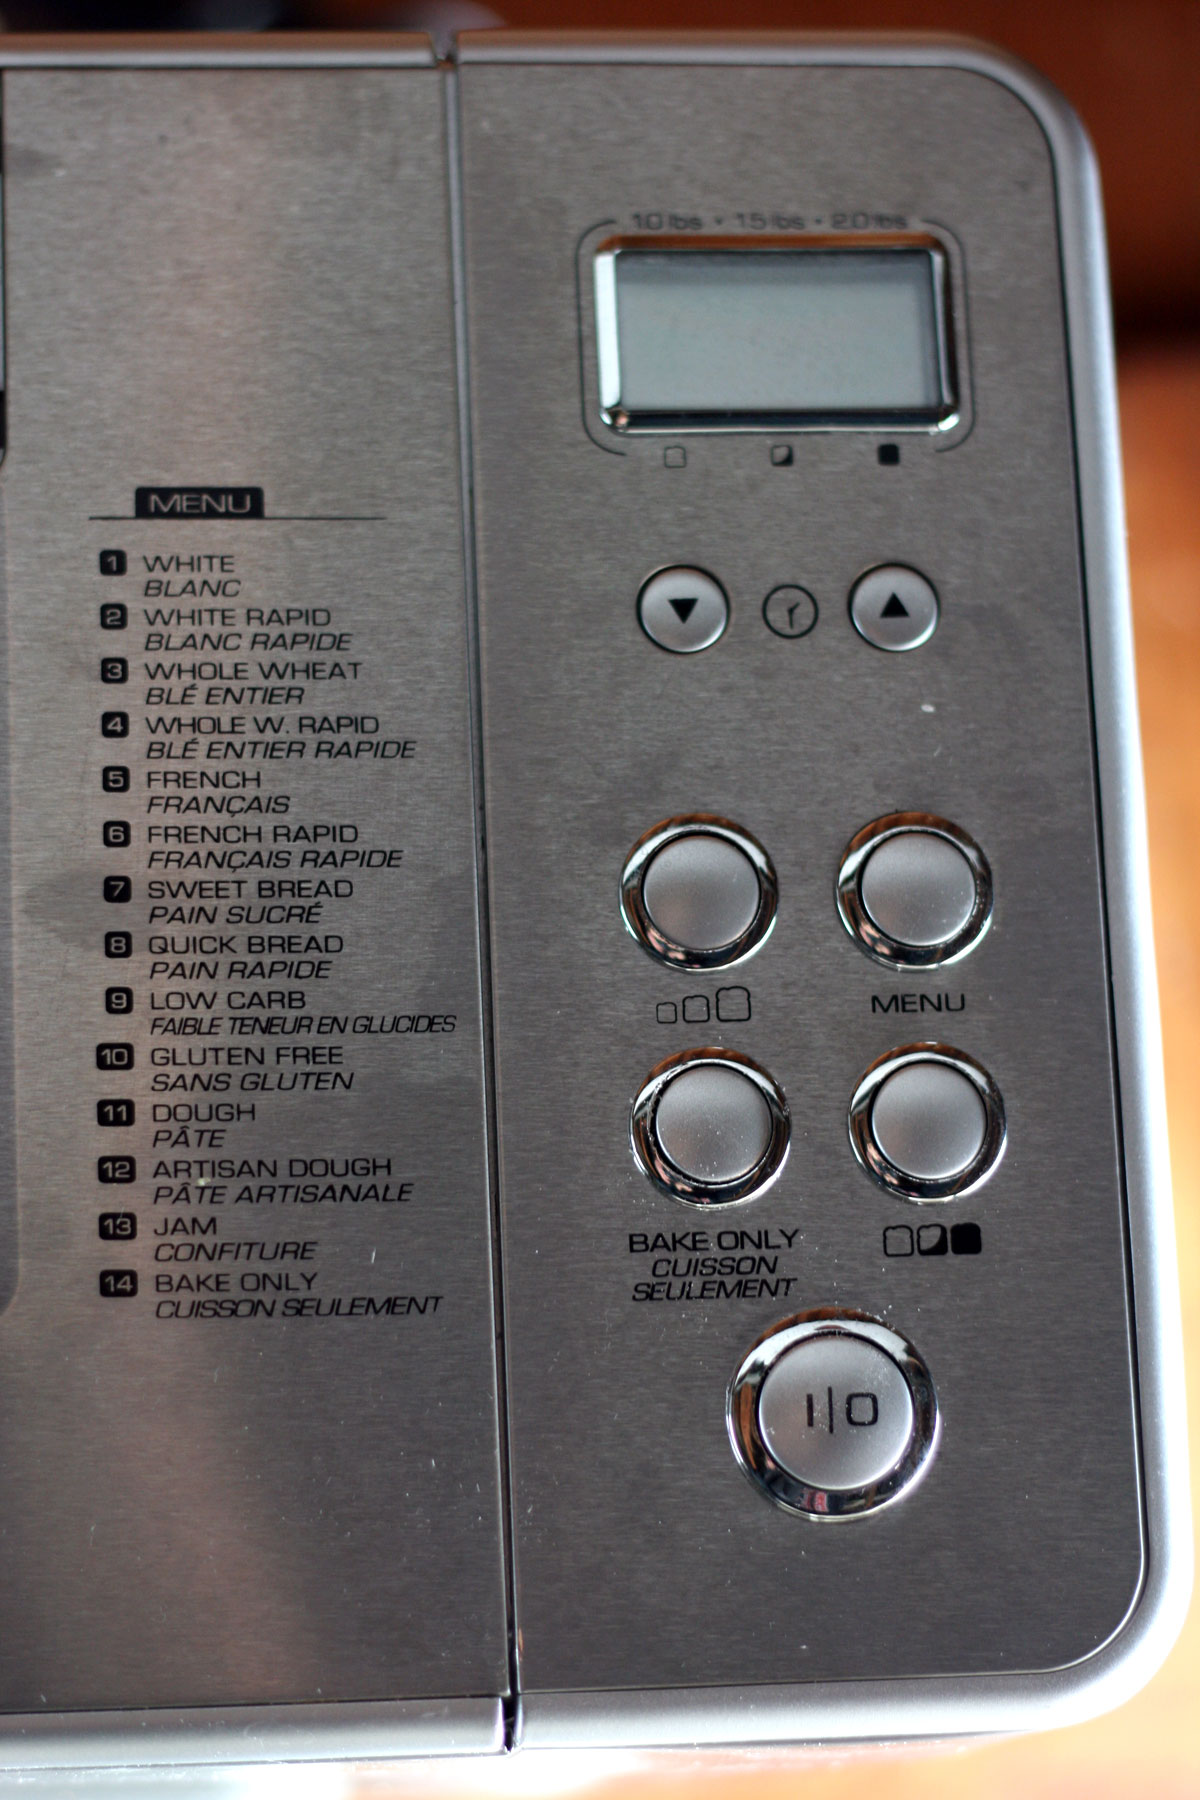 A bread machine control panel.